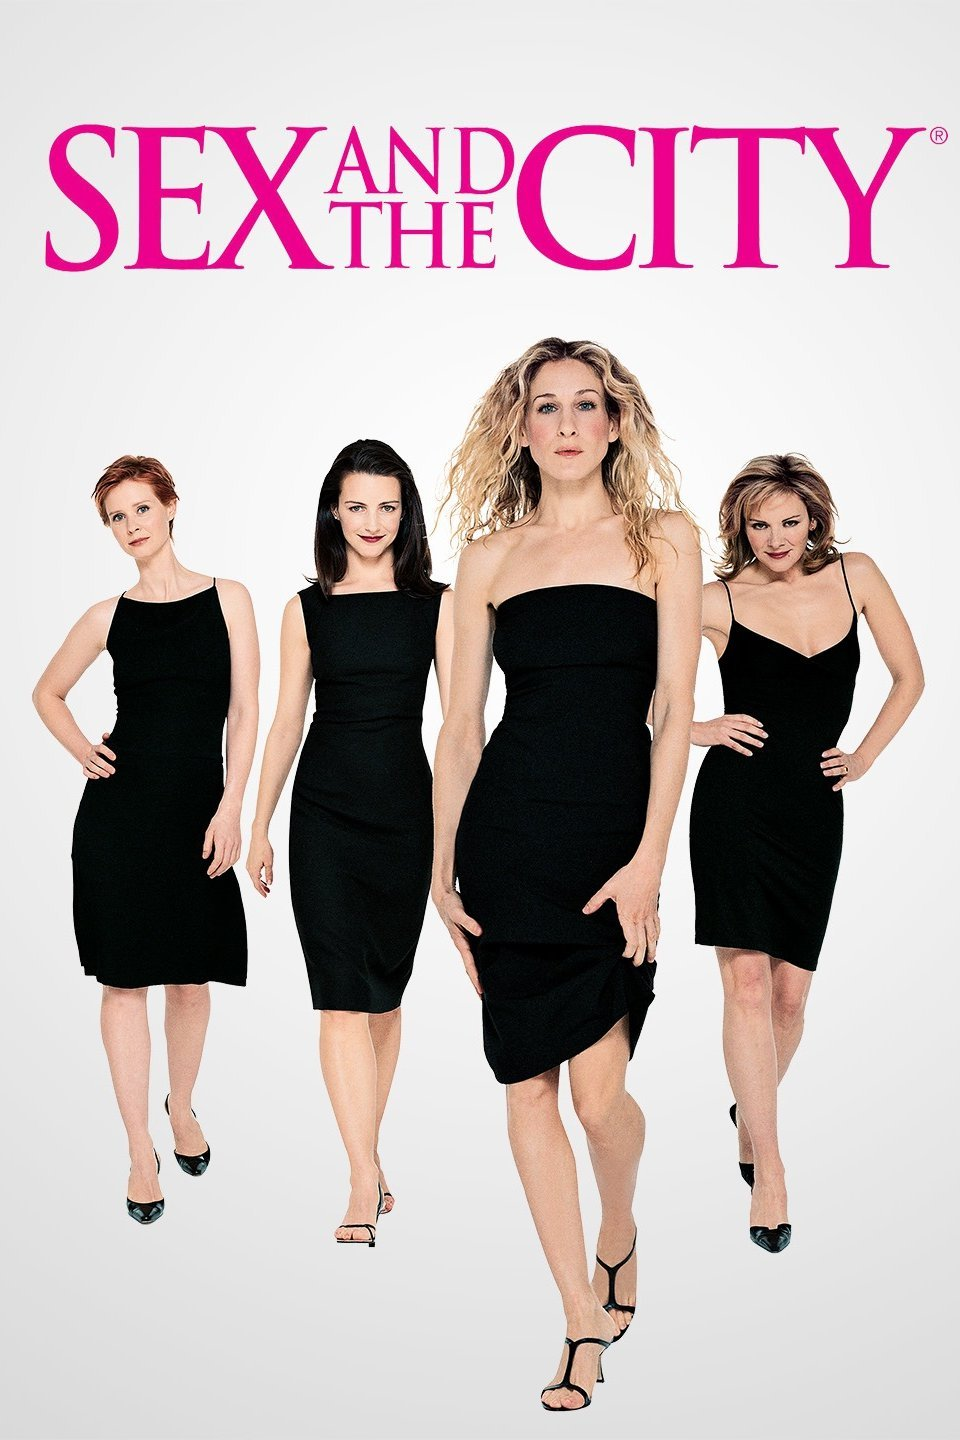 Sex and the city schedule